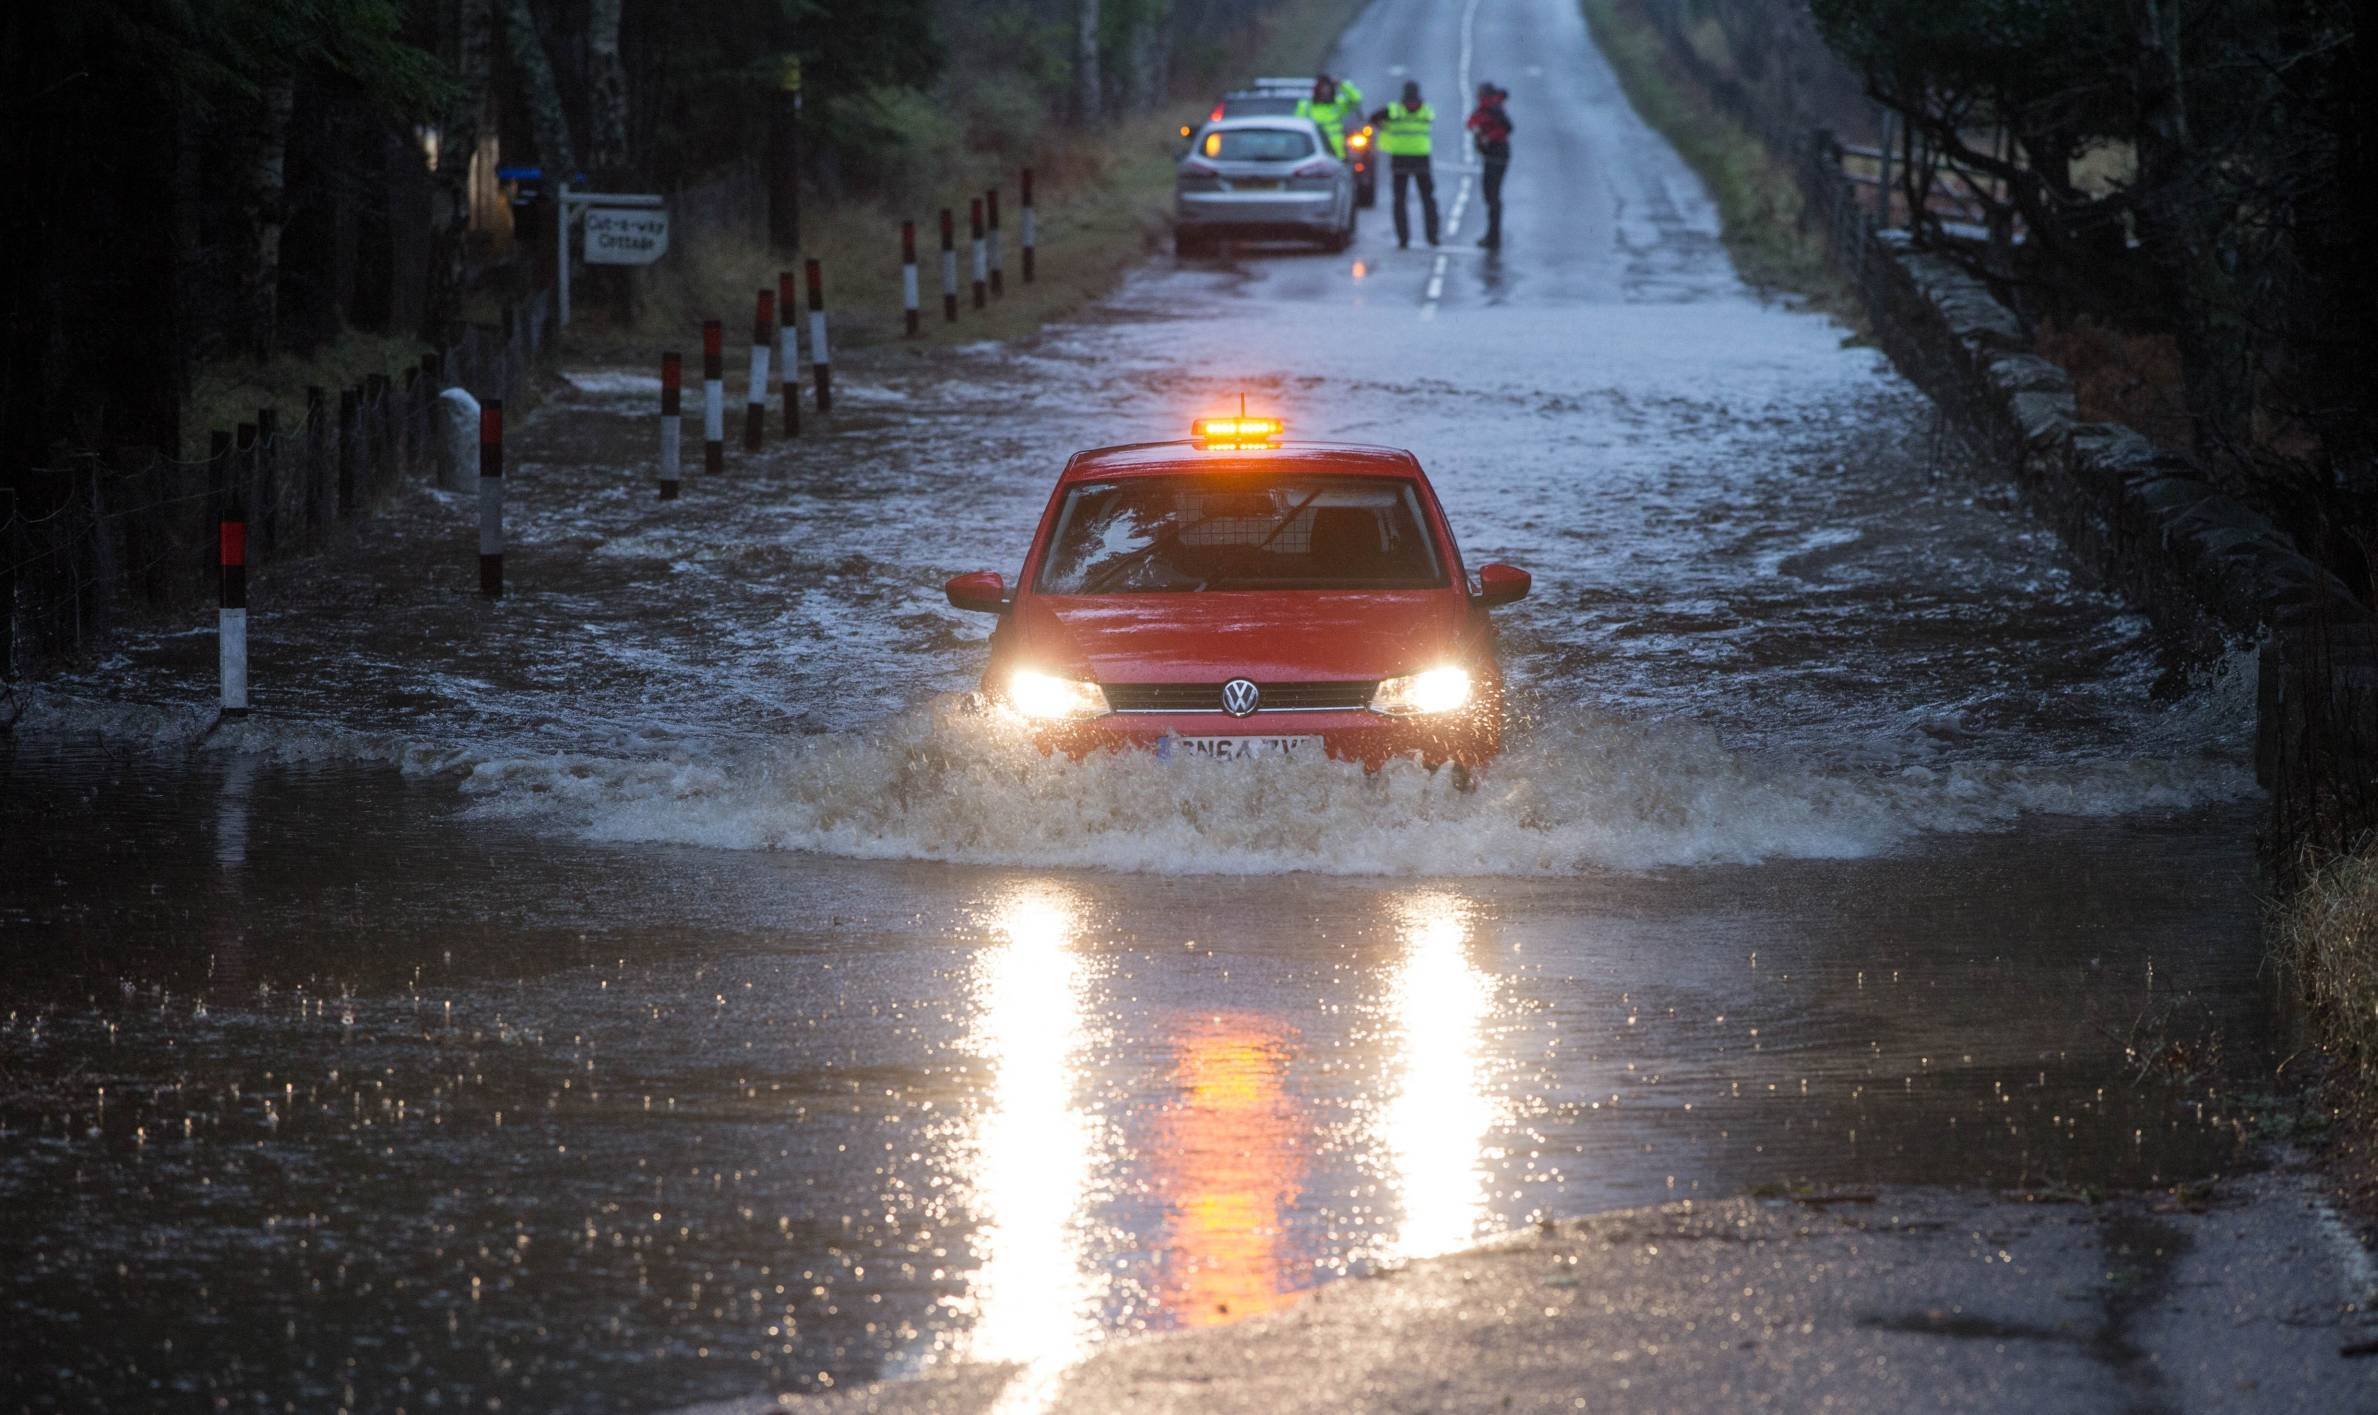 The A93 near Ballater was badly flooded on Wednesday.